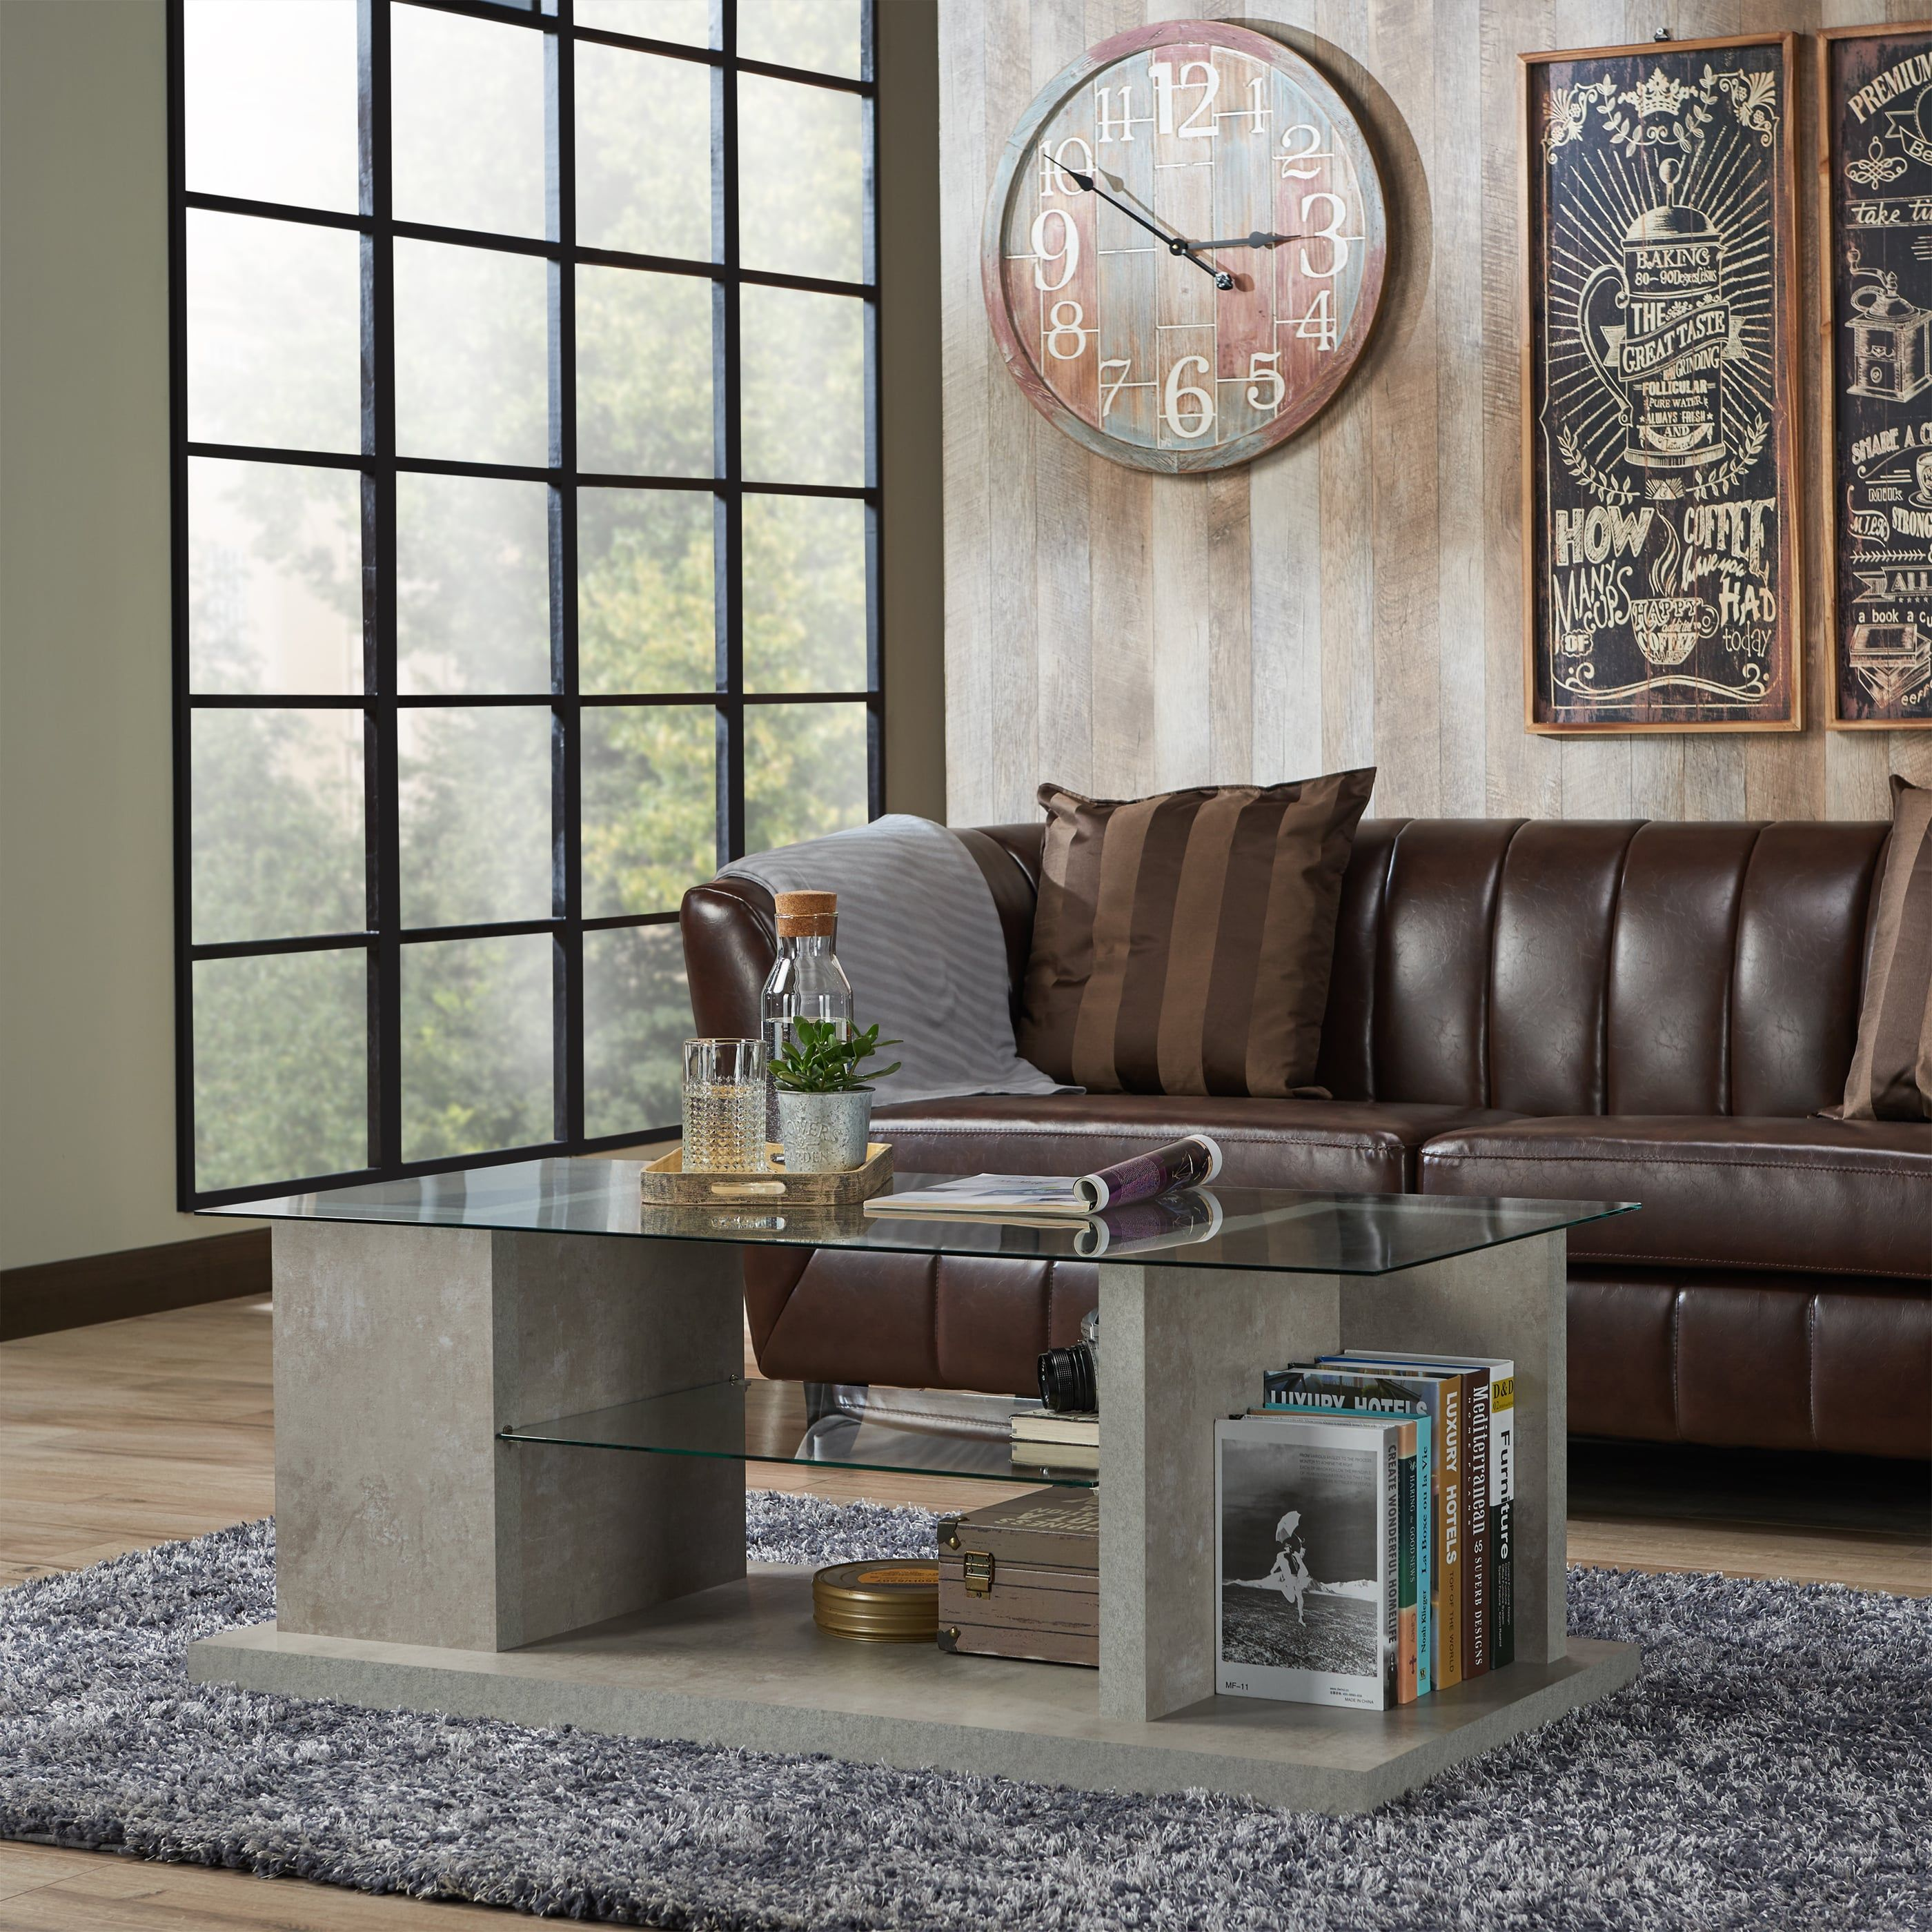 Furniture of America Pilar Modern Industrial Style Glass Top Coffee Table